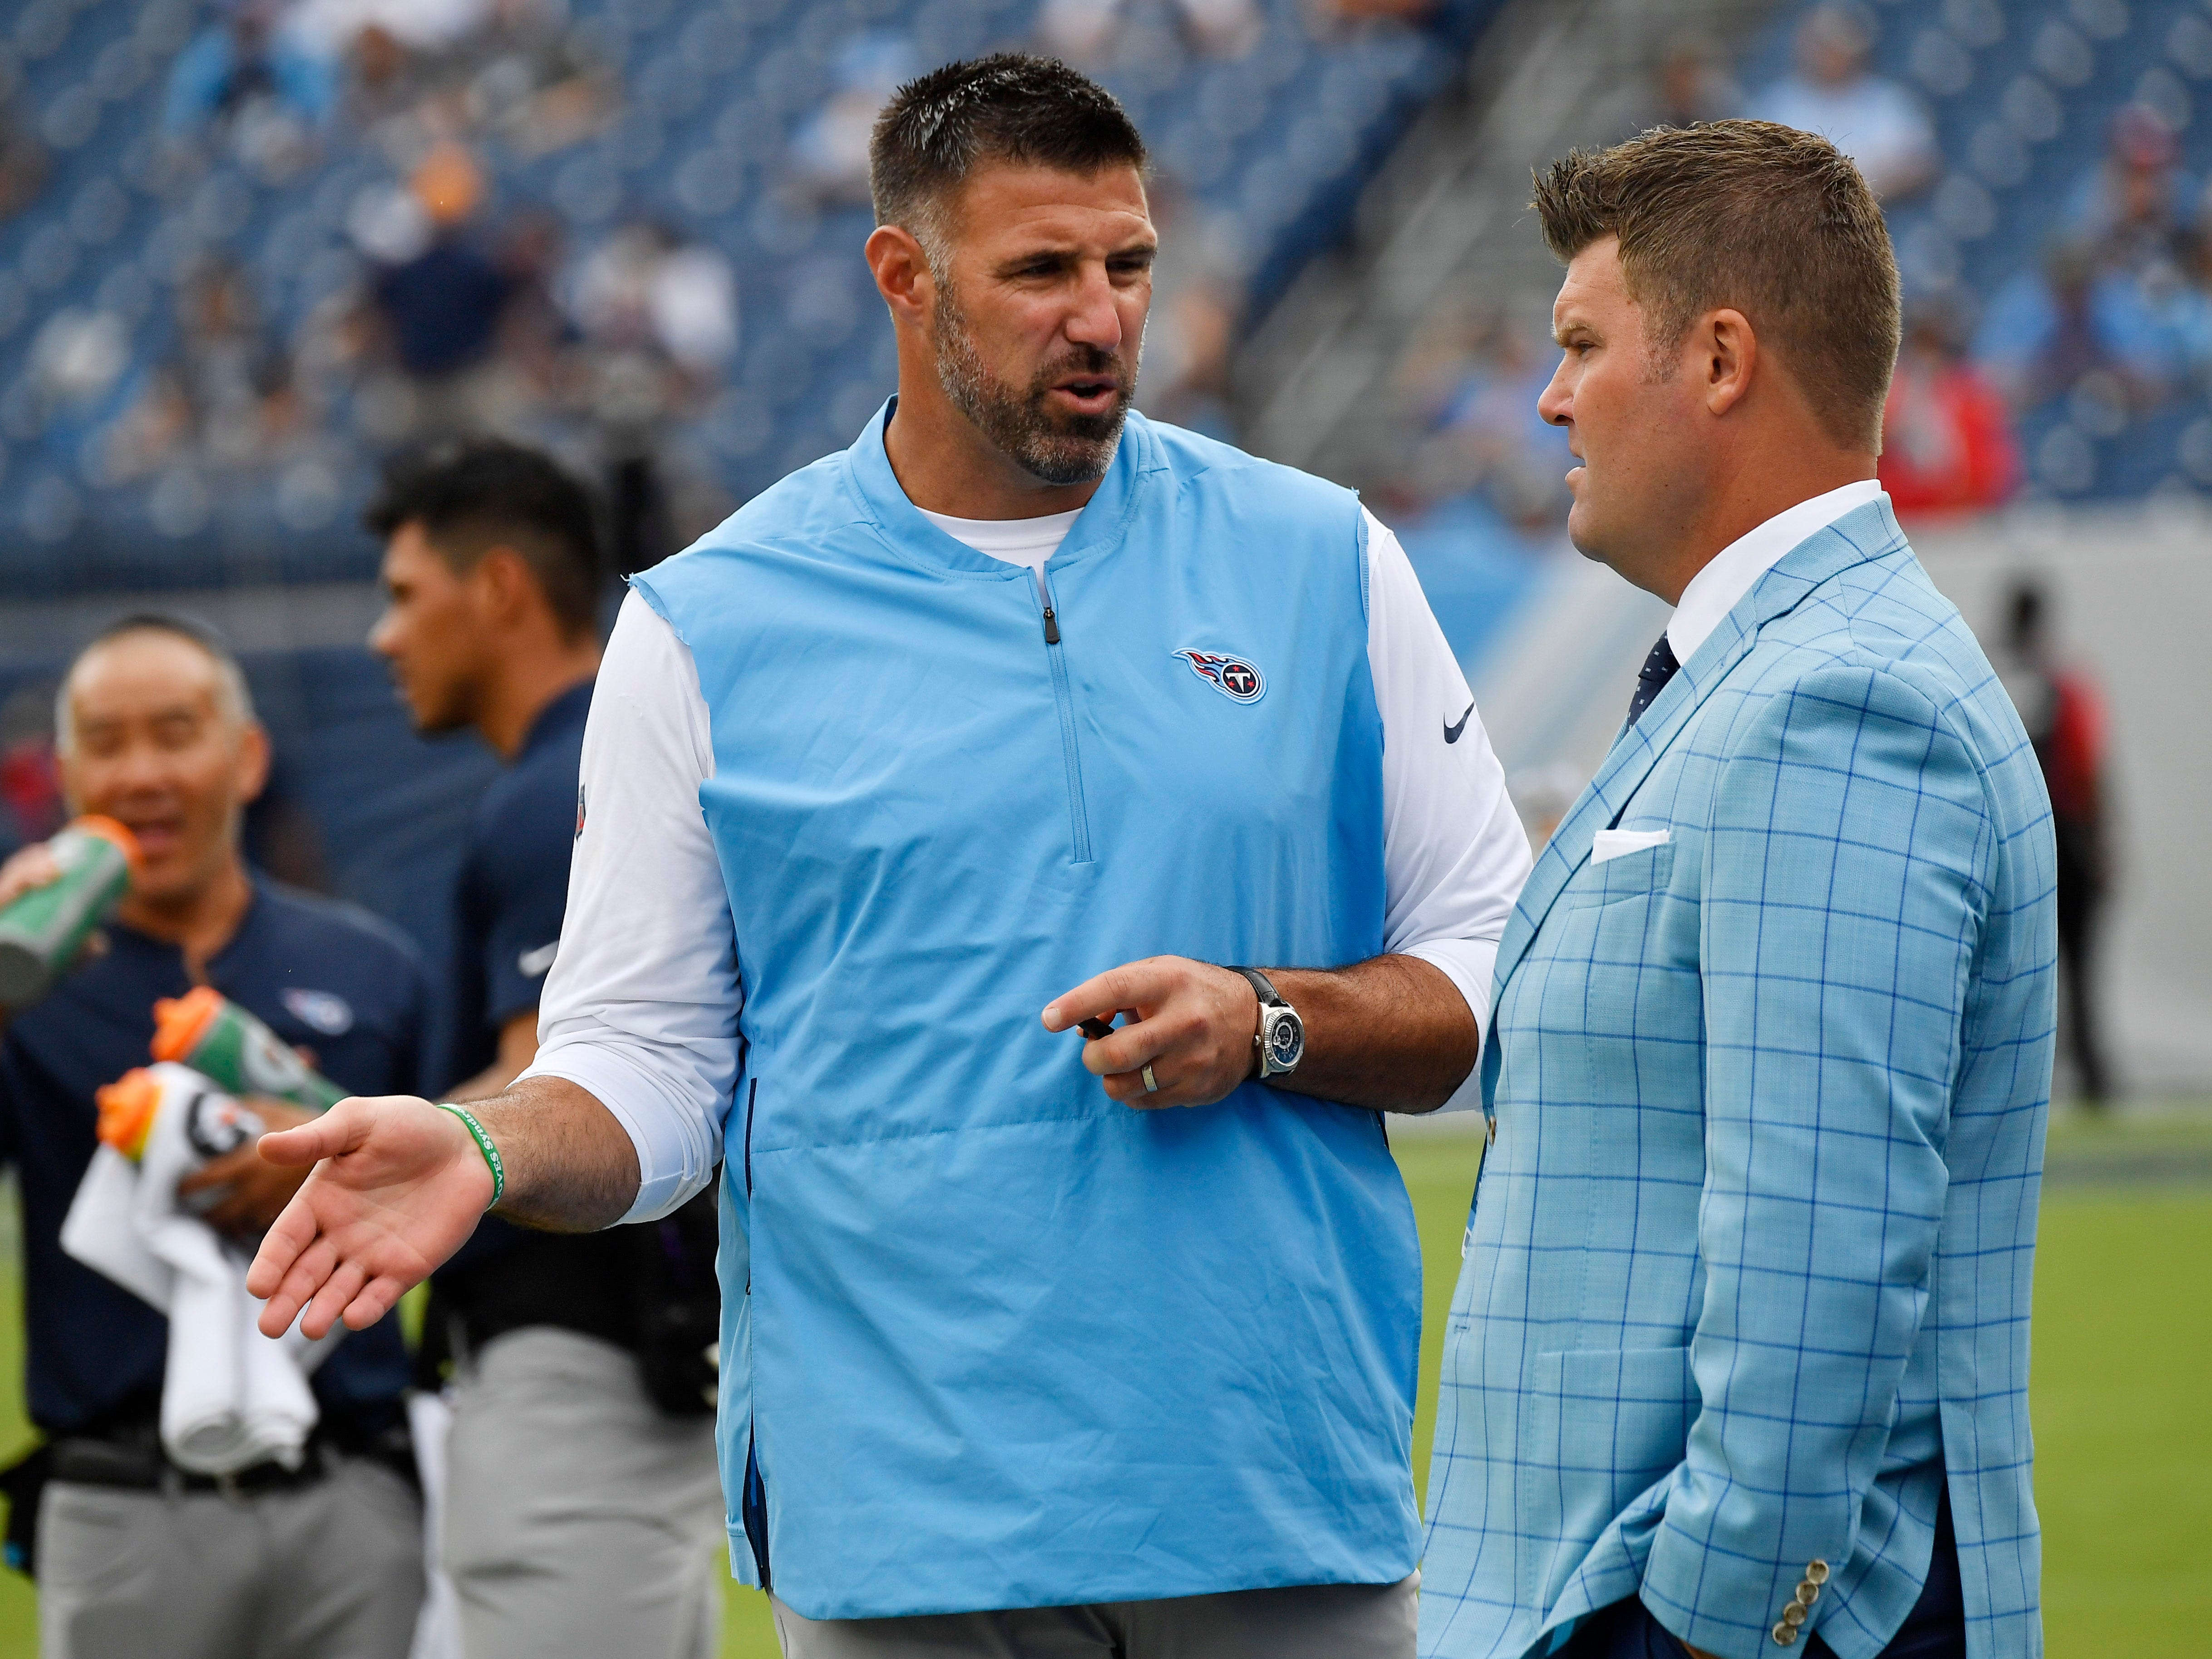 Titans head coach Mike Vrabel and General Manager Jon Robinson chat before the game at Nissan Stadium Sunday, Sept. 16, 2018, in Nashville, Tenn.